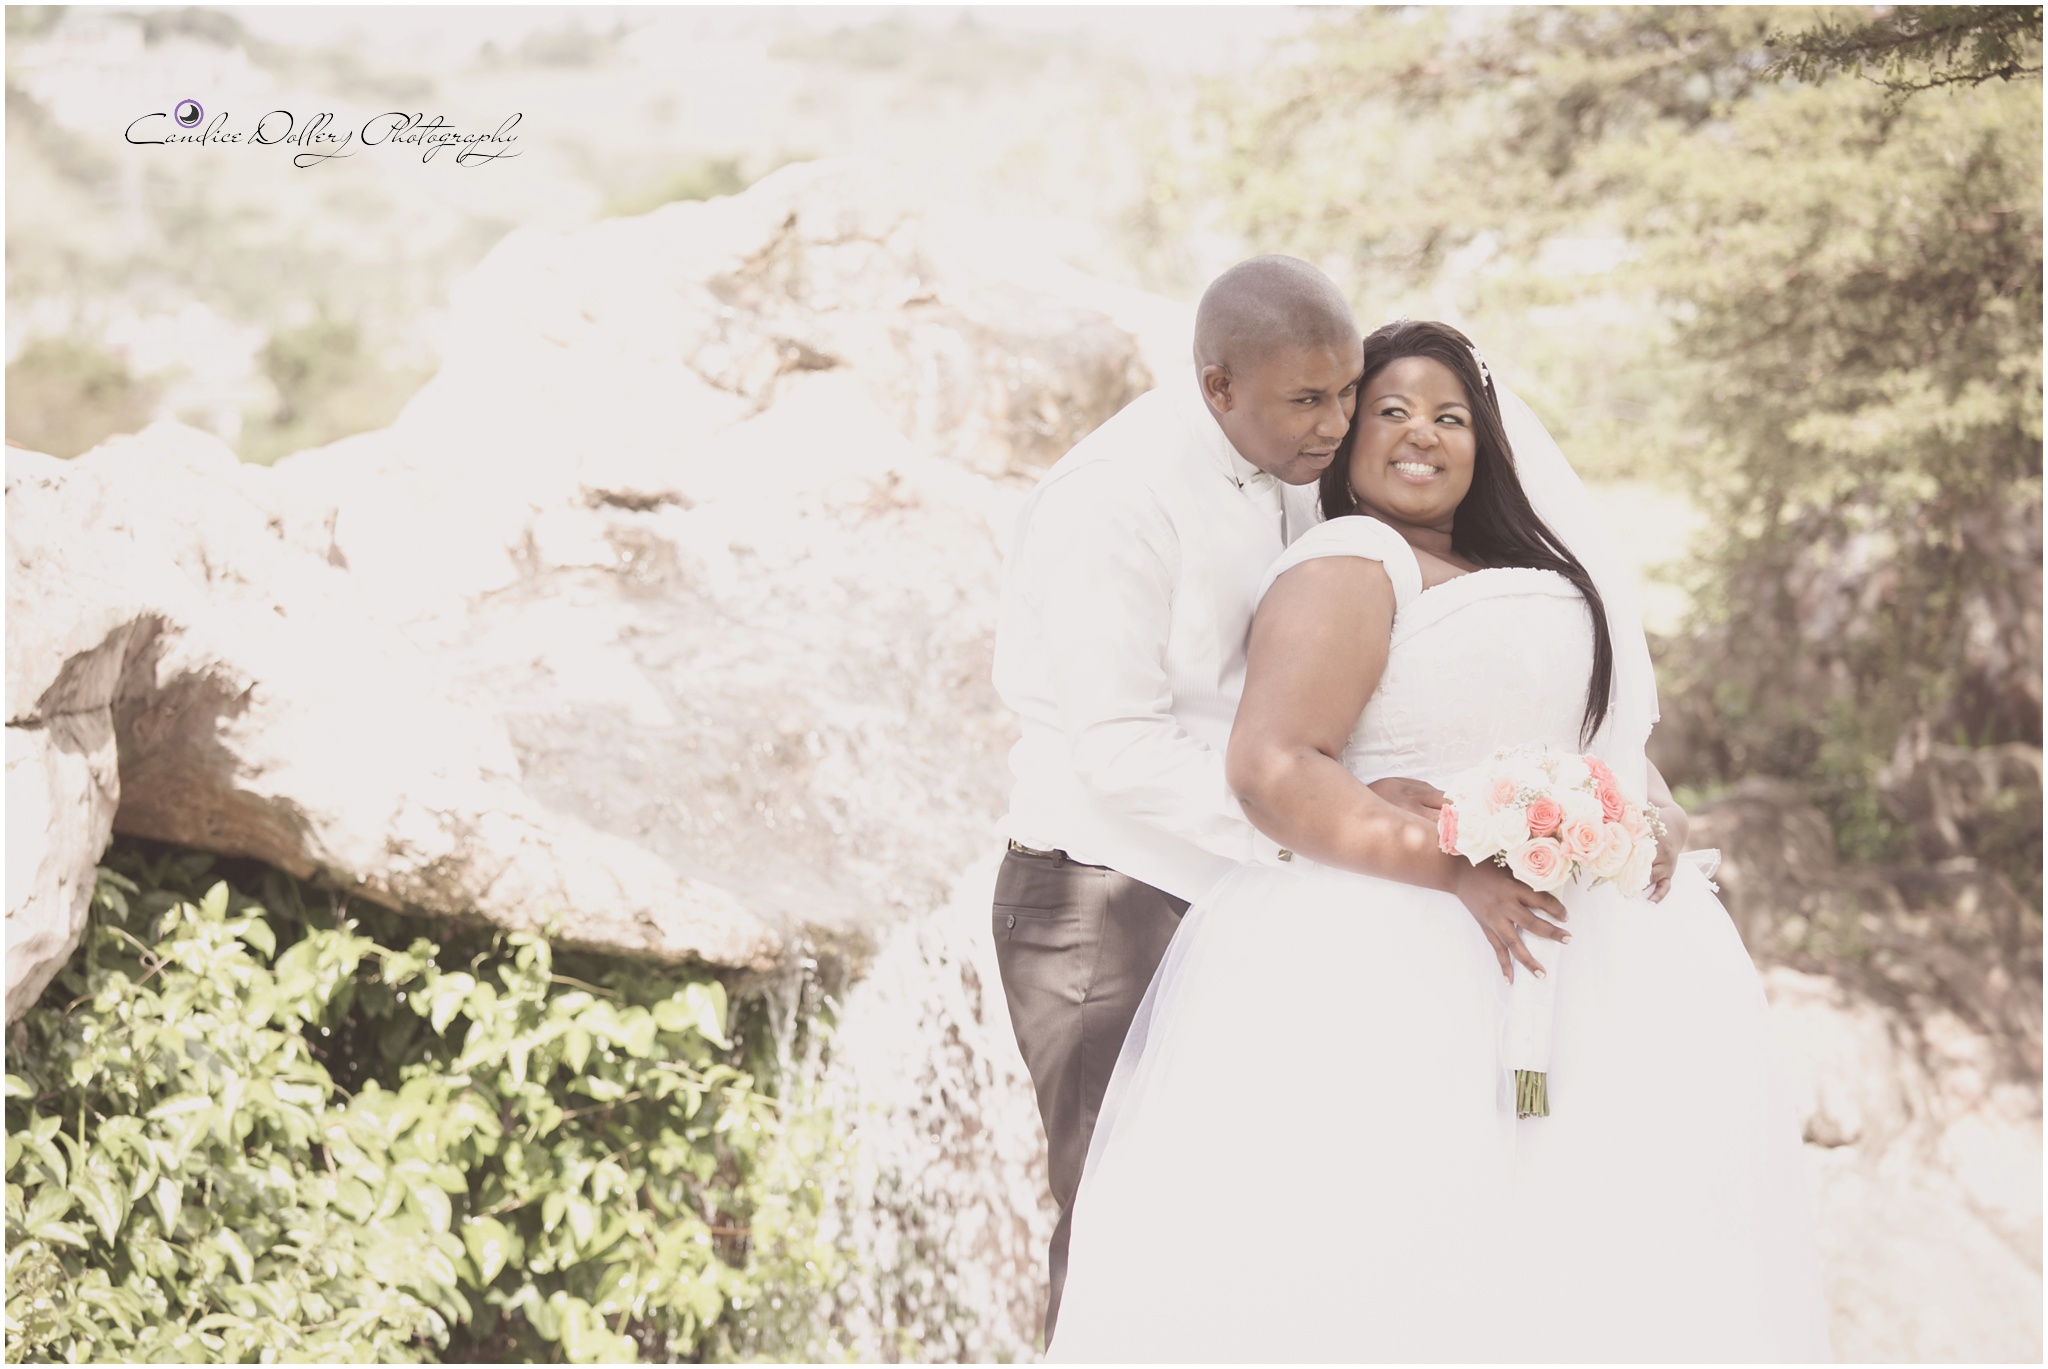 Wedding Gonubie Manor Thola & Phili-Candice Dollery Photograhy_4285